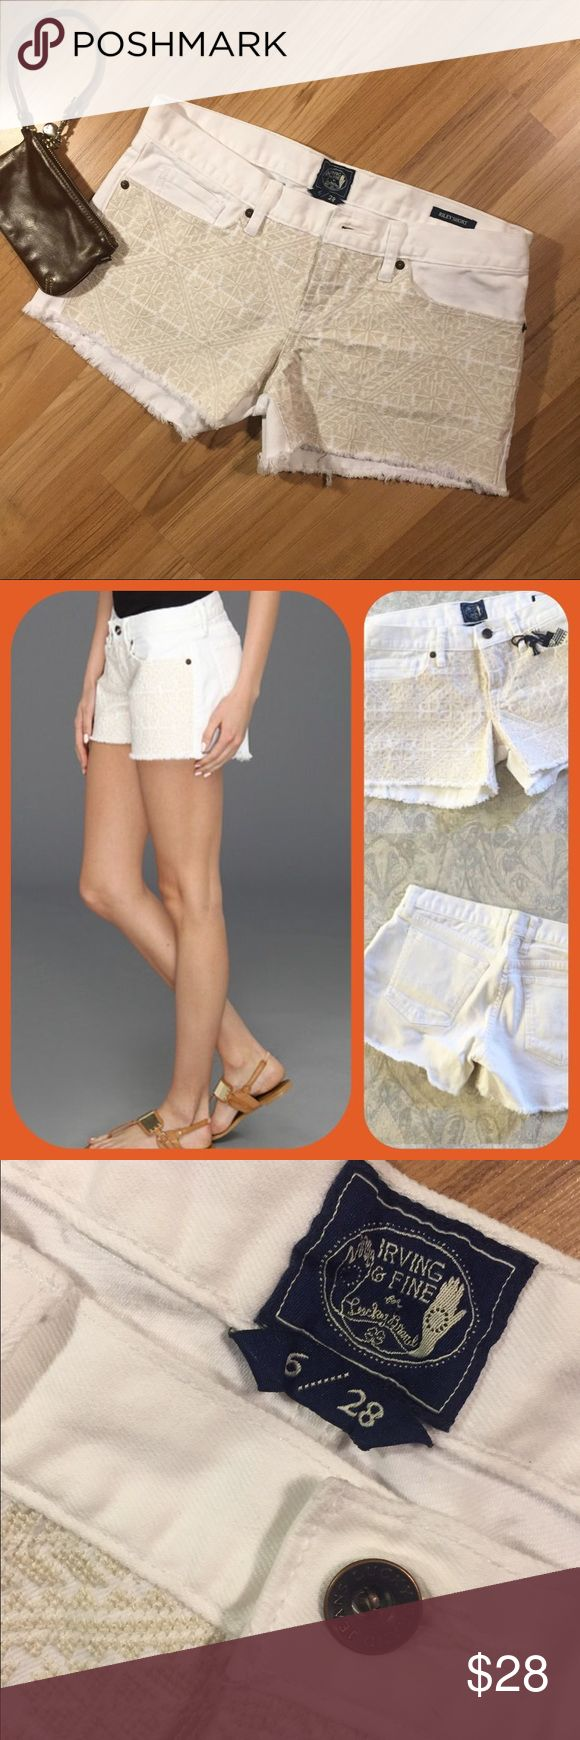 🆕🌻 L U C K Y Irving & Fine Riley Shorts 🆕 WOTS 🌻 Tonal embroidery shorts that are off white and perfect! Beautiful, never worn and they go with everything!         ** 3 in inseam, 8 in rise,  16.5 in across flat. Pics for details ( Lucky model and AE wristlet not included! ) Size 6/ 28 Lucky Brand Shorts